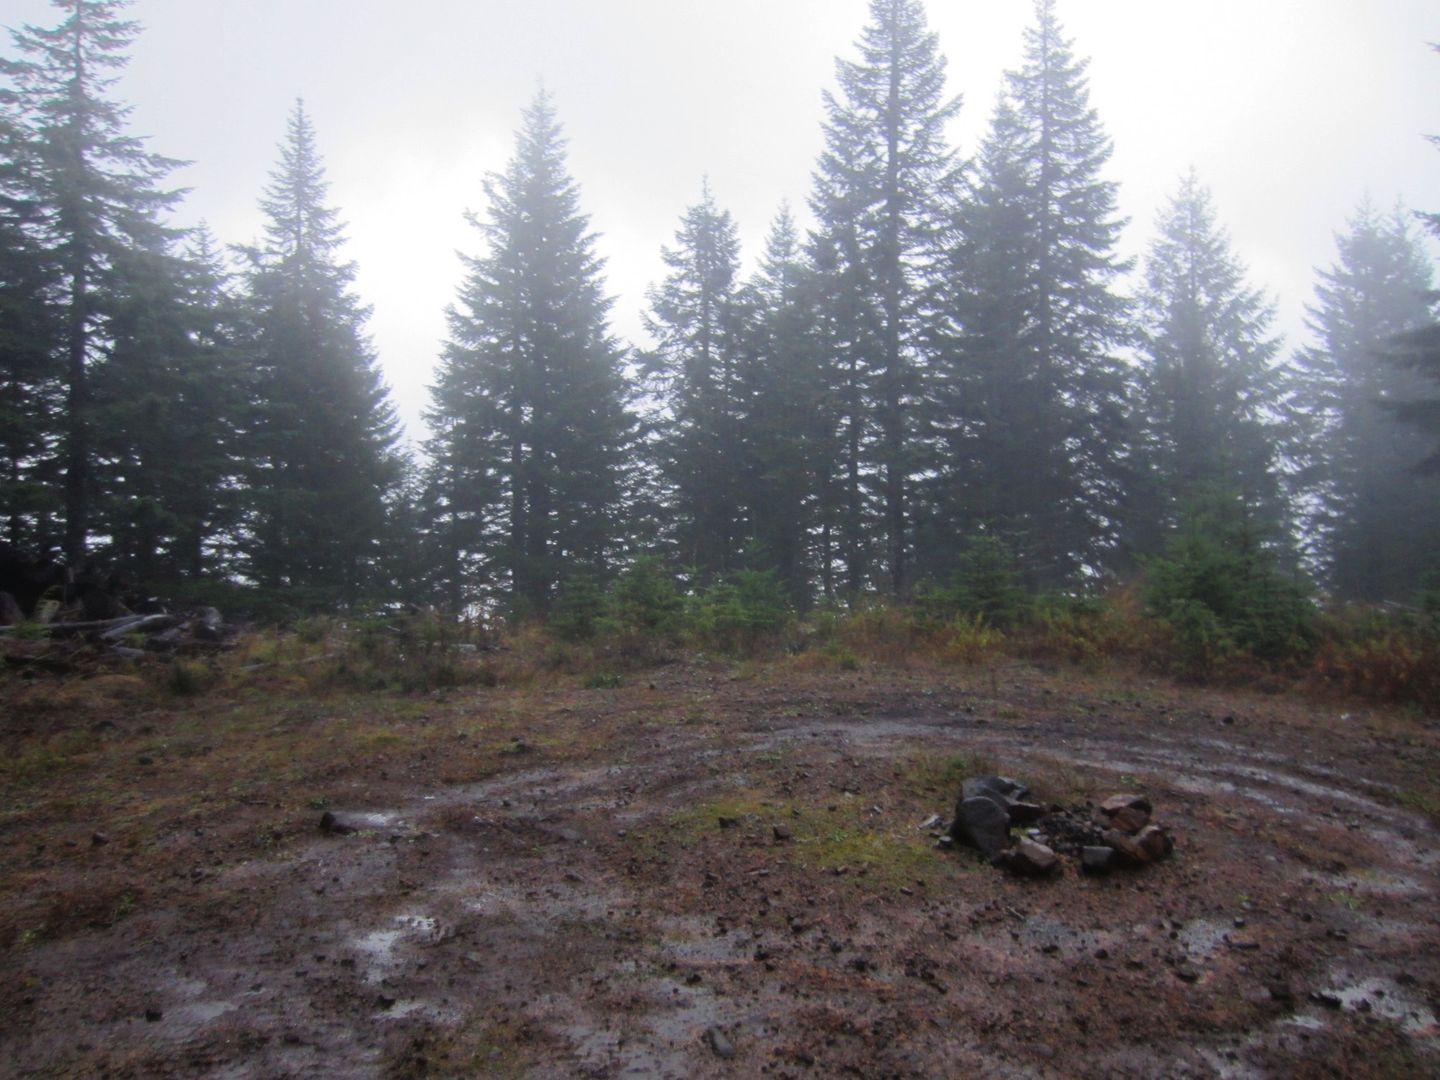 Camping: Firebreak Five / Tillamook State Forest